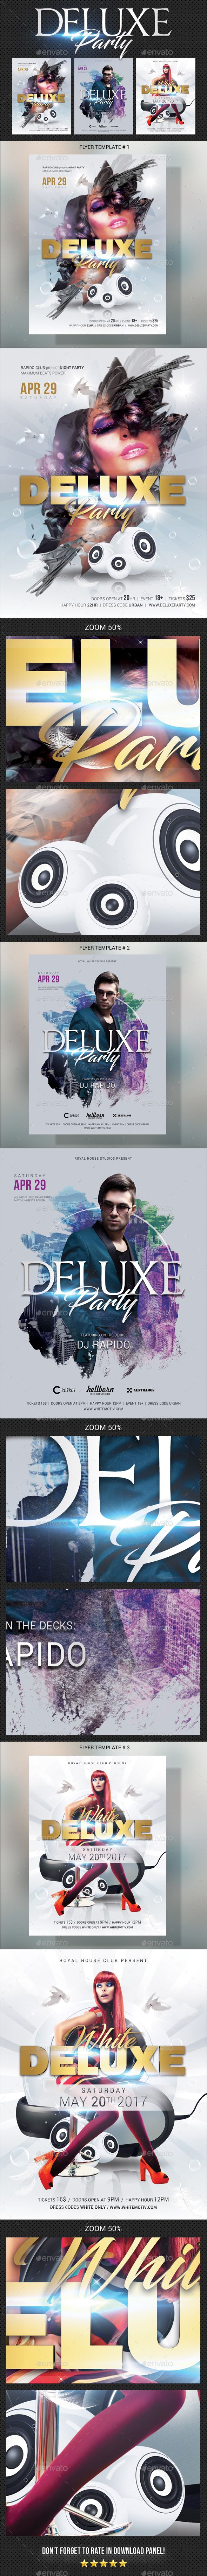 Deluxe Dj Party Flyer Bundle